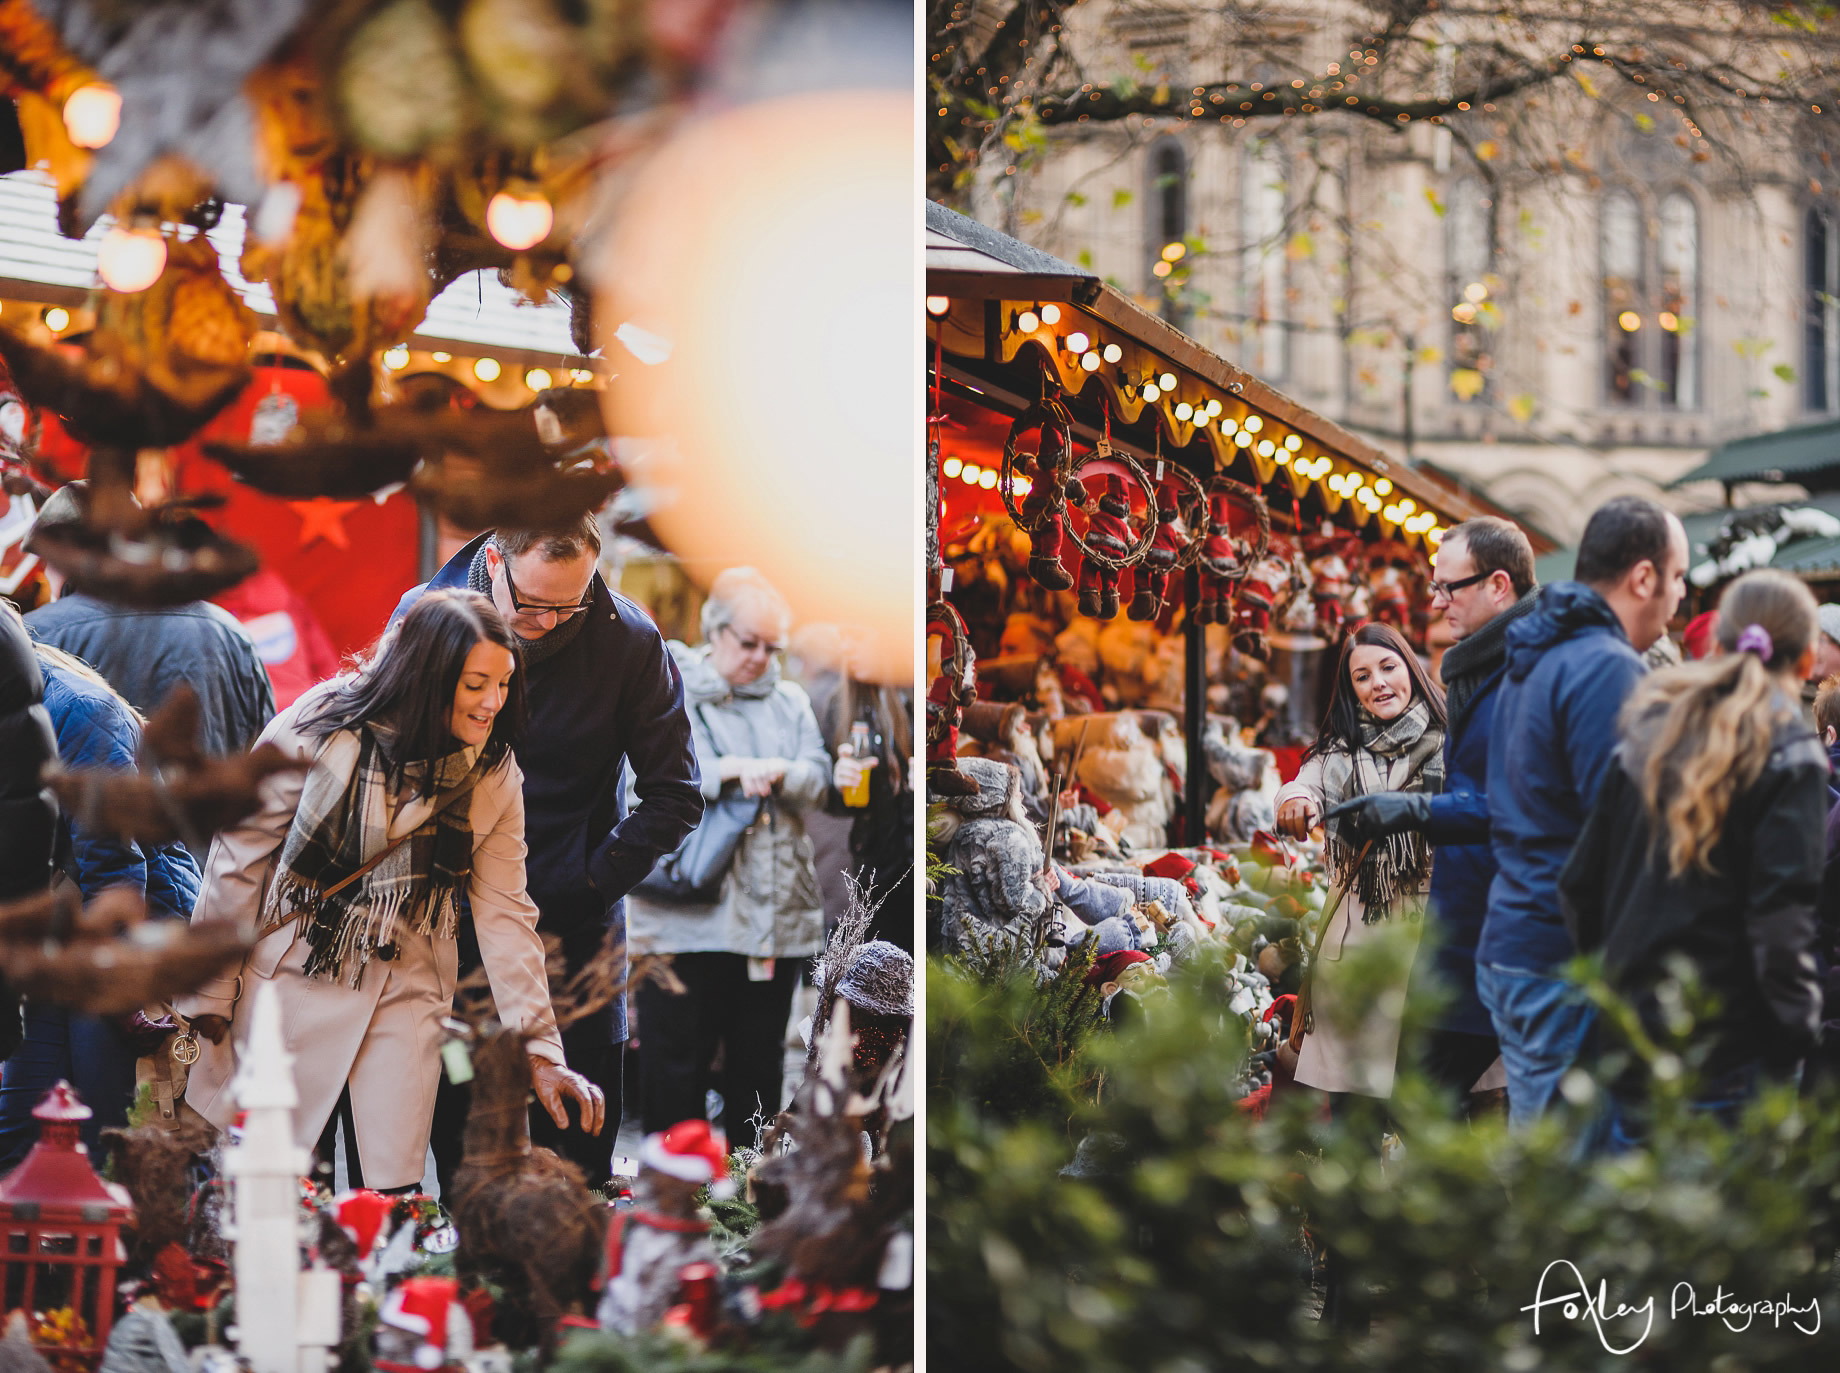 Angela and Andrew's Pre-Wedding Shoot at Manchester Christmas Markets 009